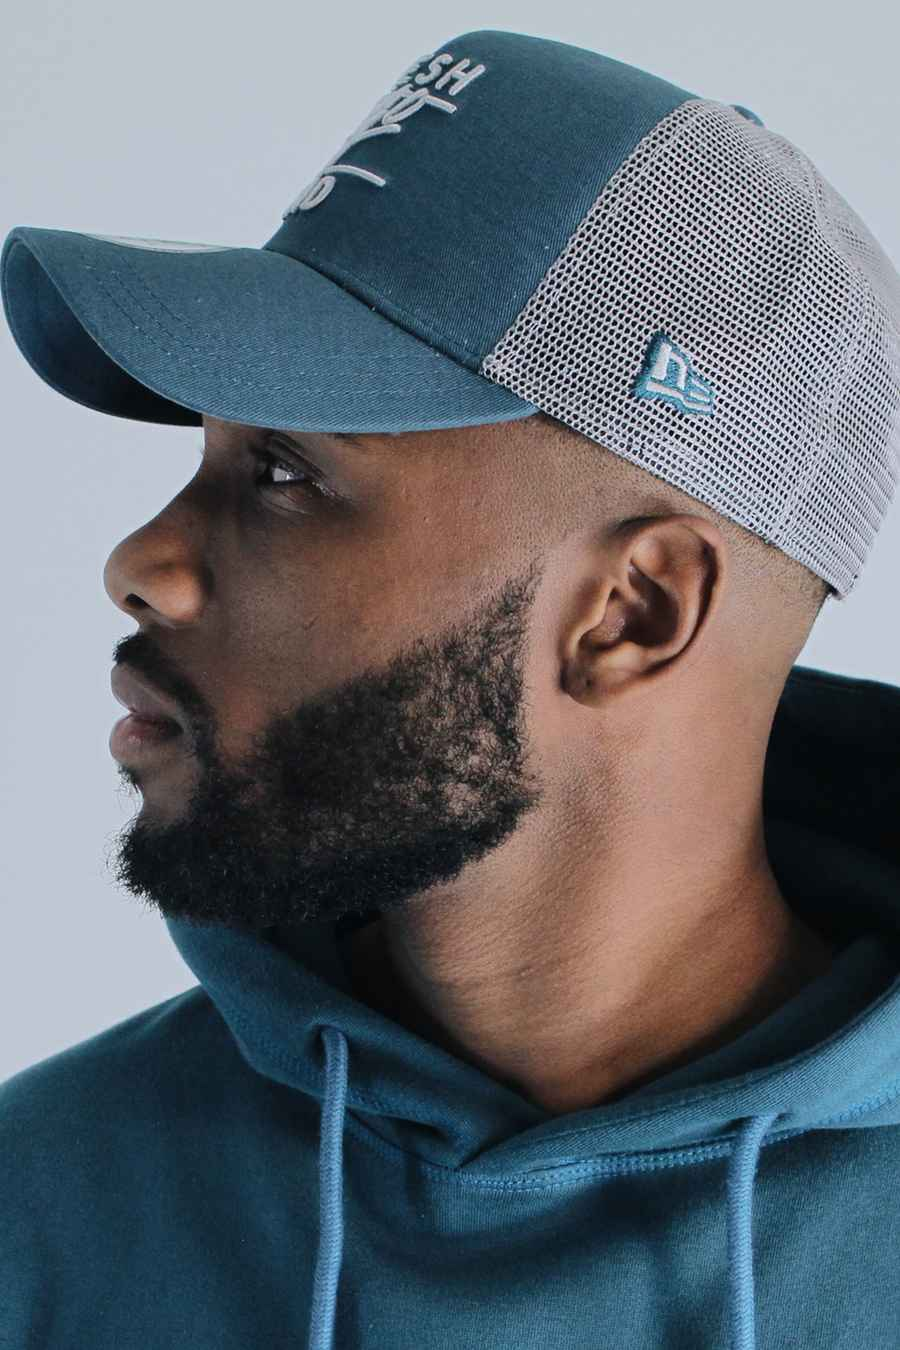 Fresh Ego Kid New Era Mesh Trucker Cap - Teal/Grey - 2